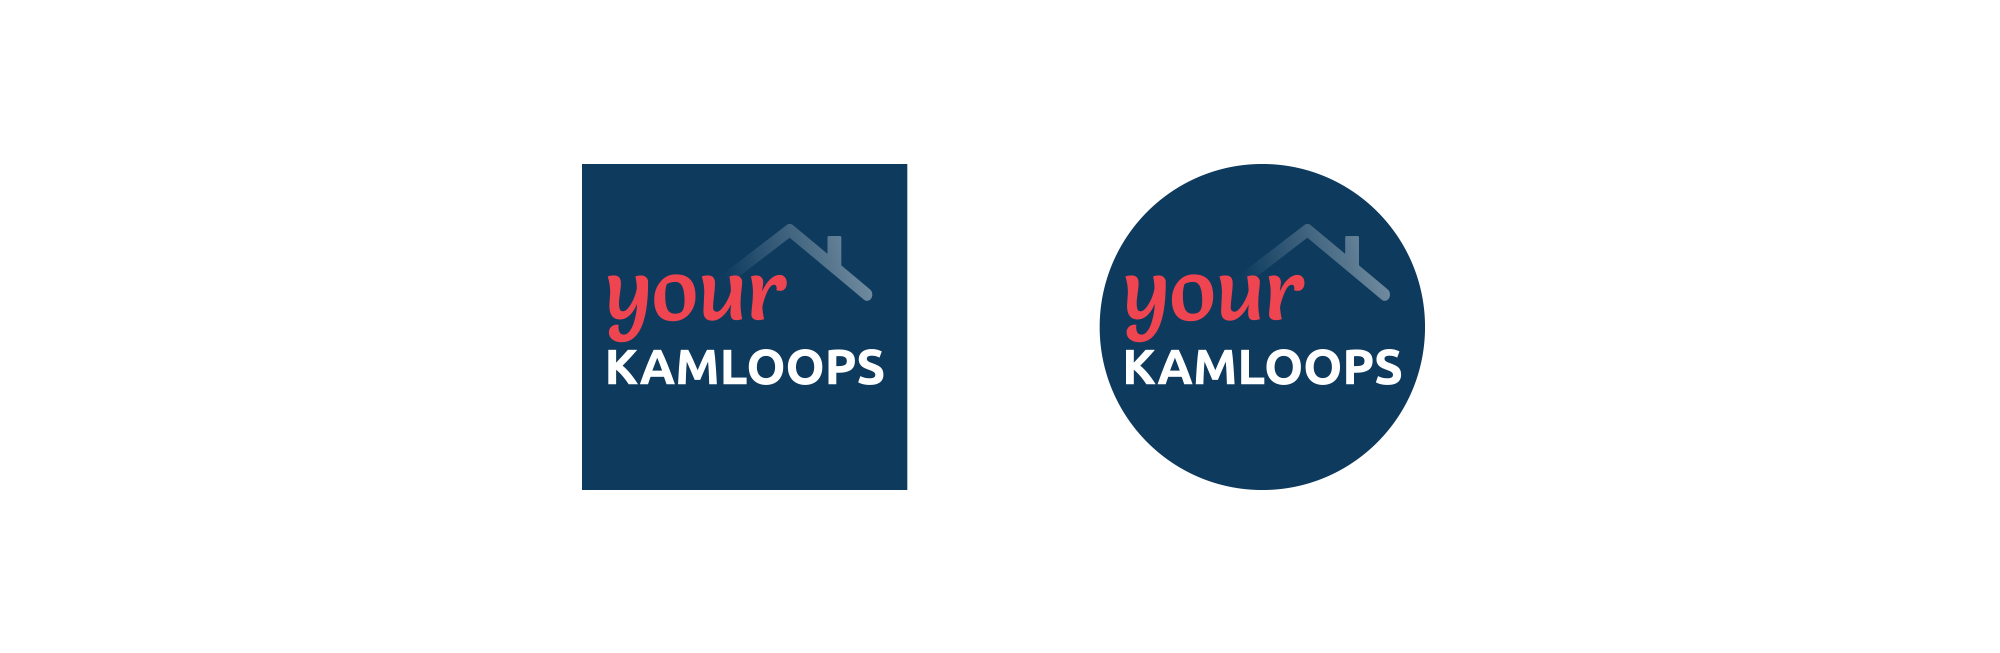 Sample image of social media icon design for Your Kamloops.